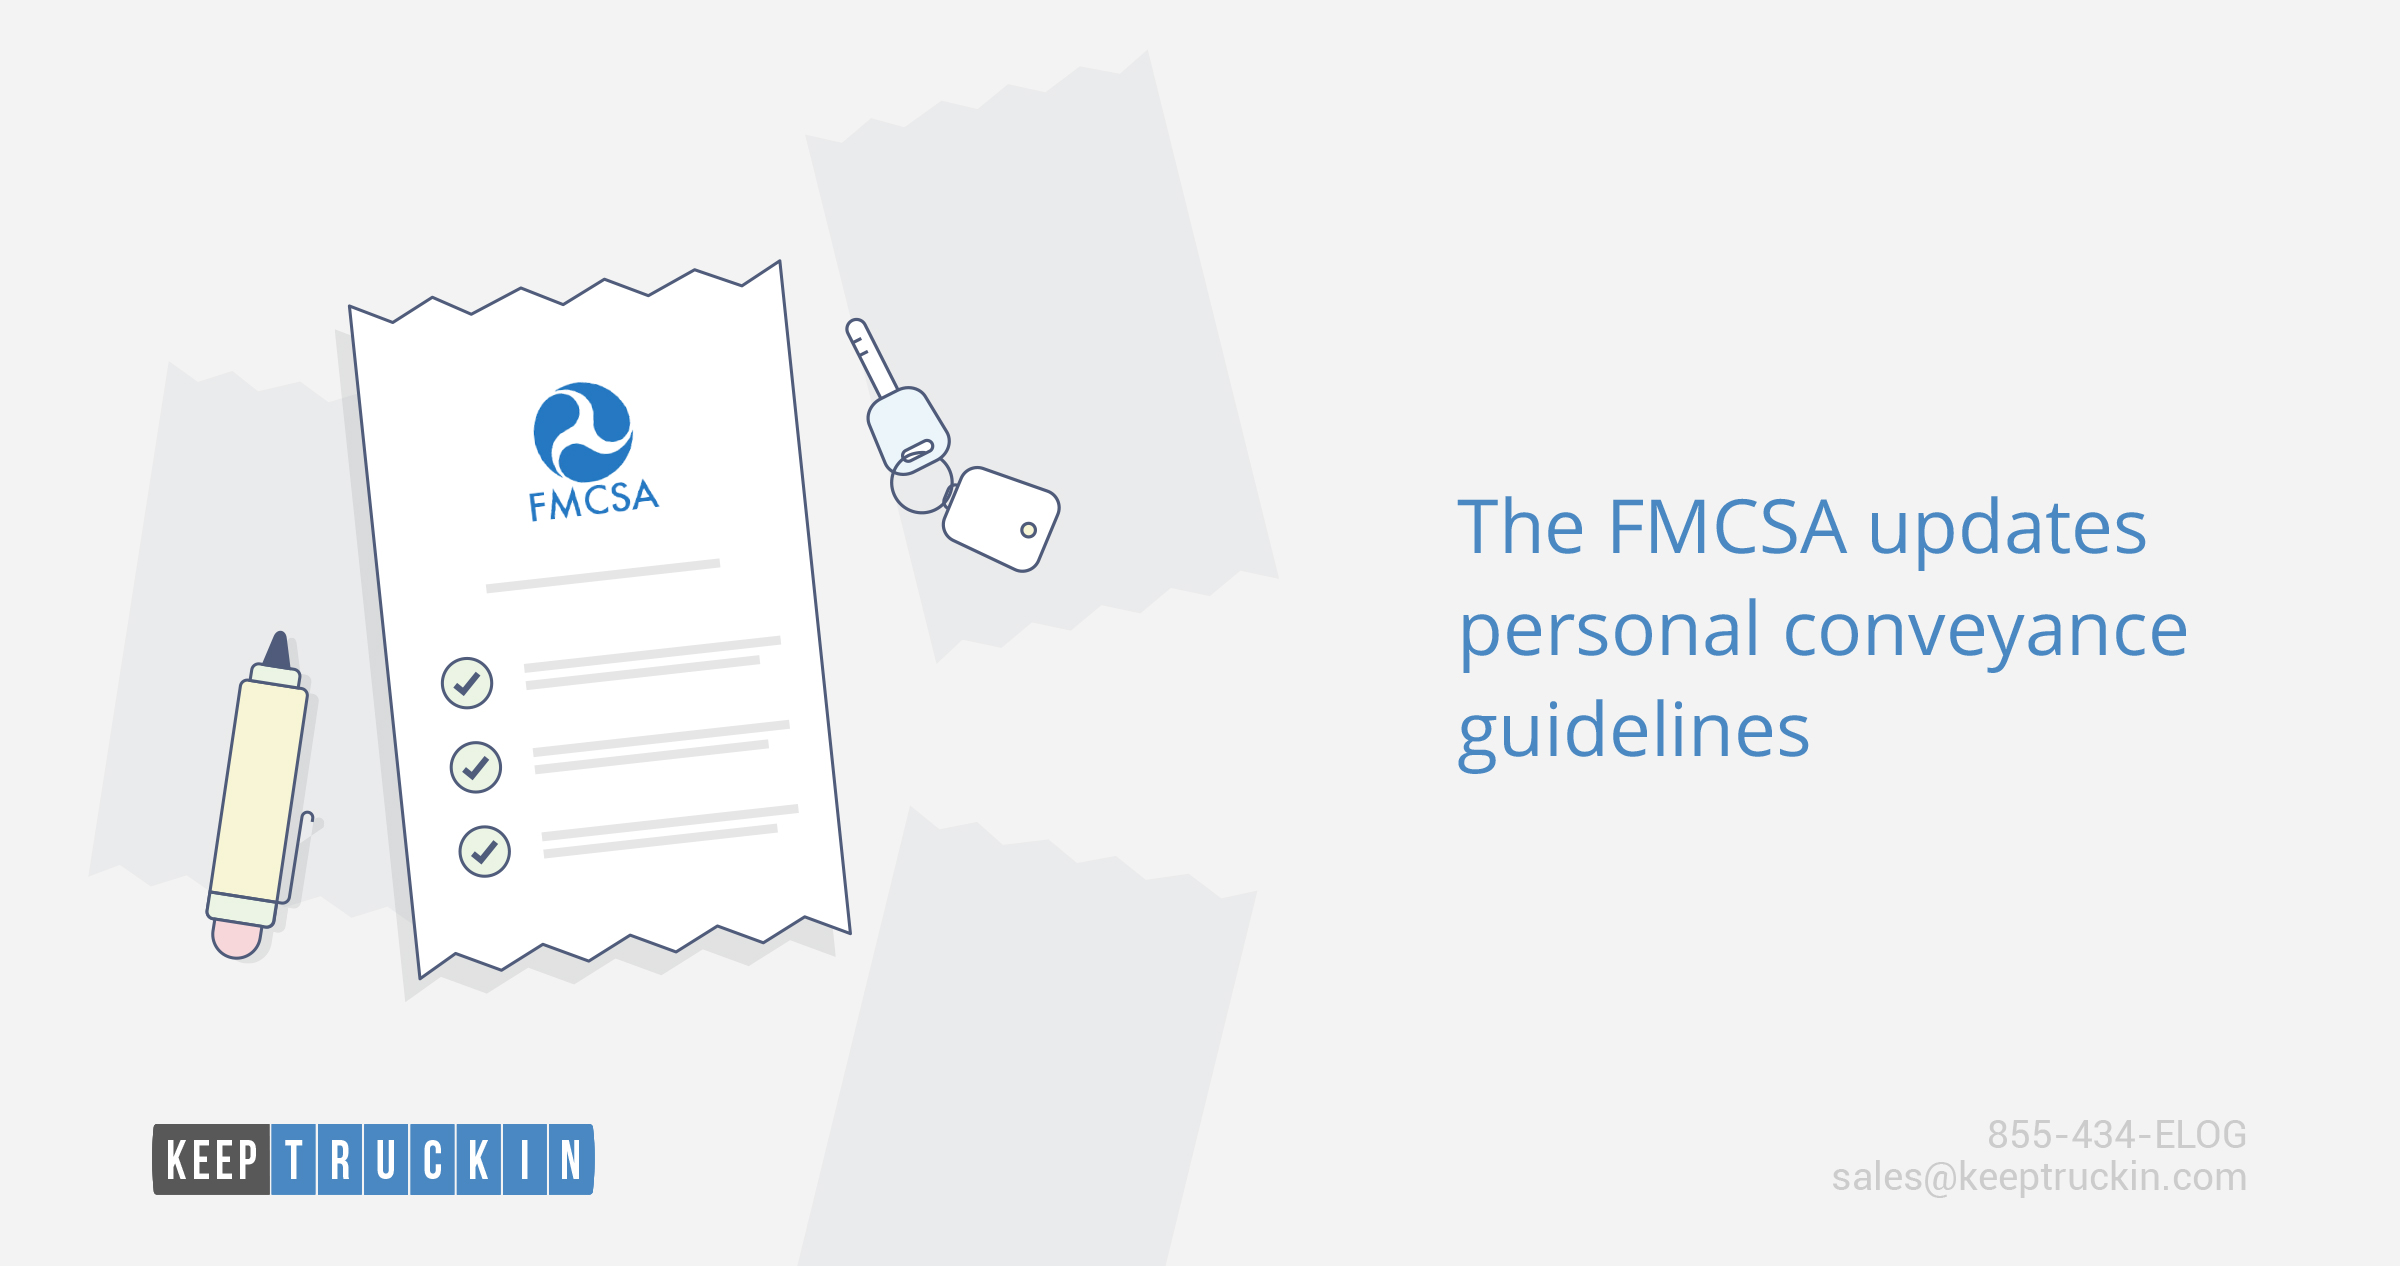 The FMCSA updates personal conveyance guidelines